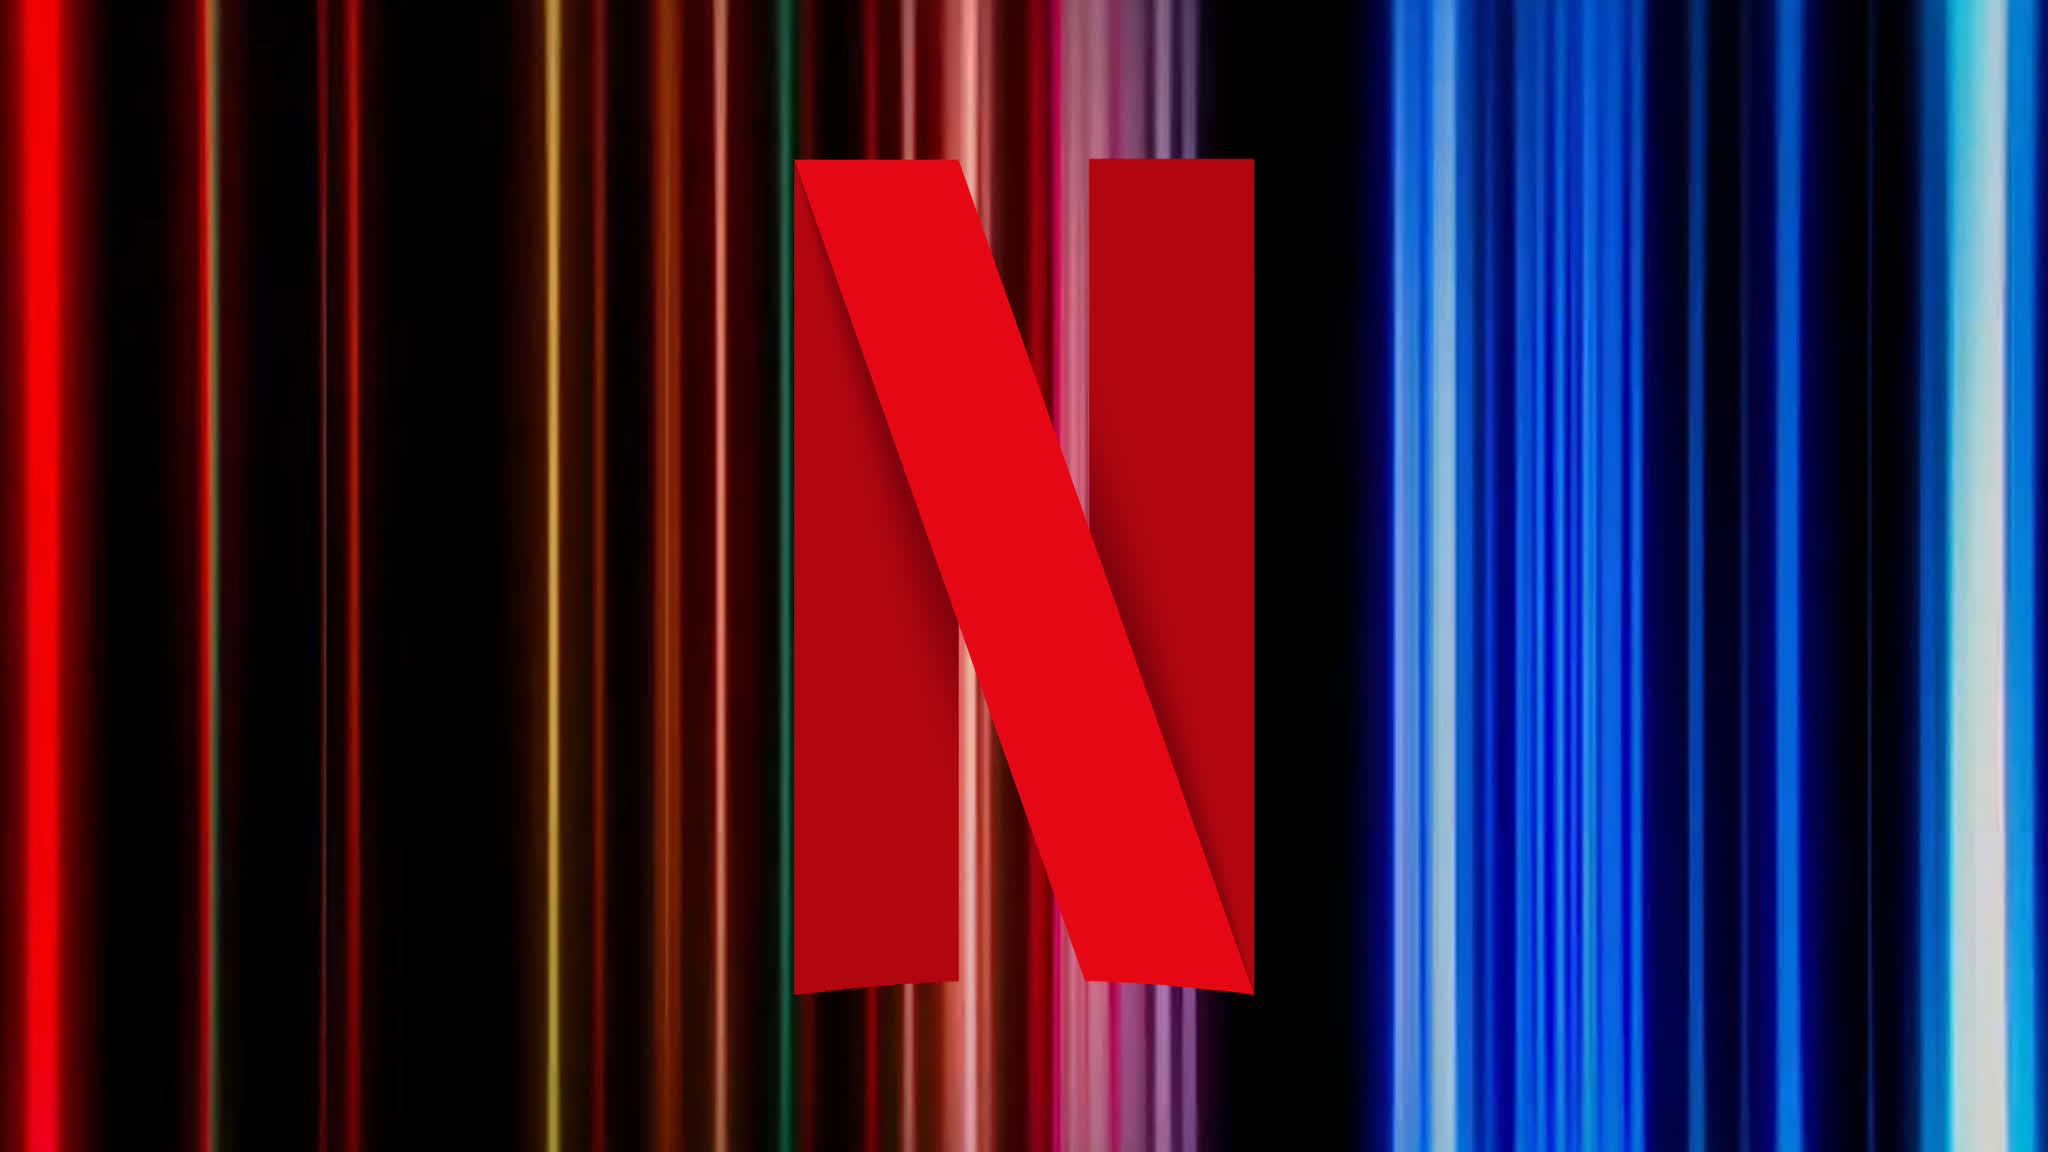 Netflix to host global fan event 'Tudum' on September 25 with new trailers, interactive panels and more